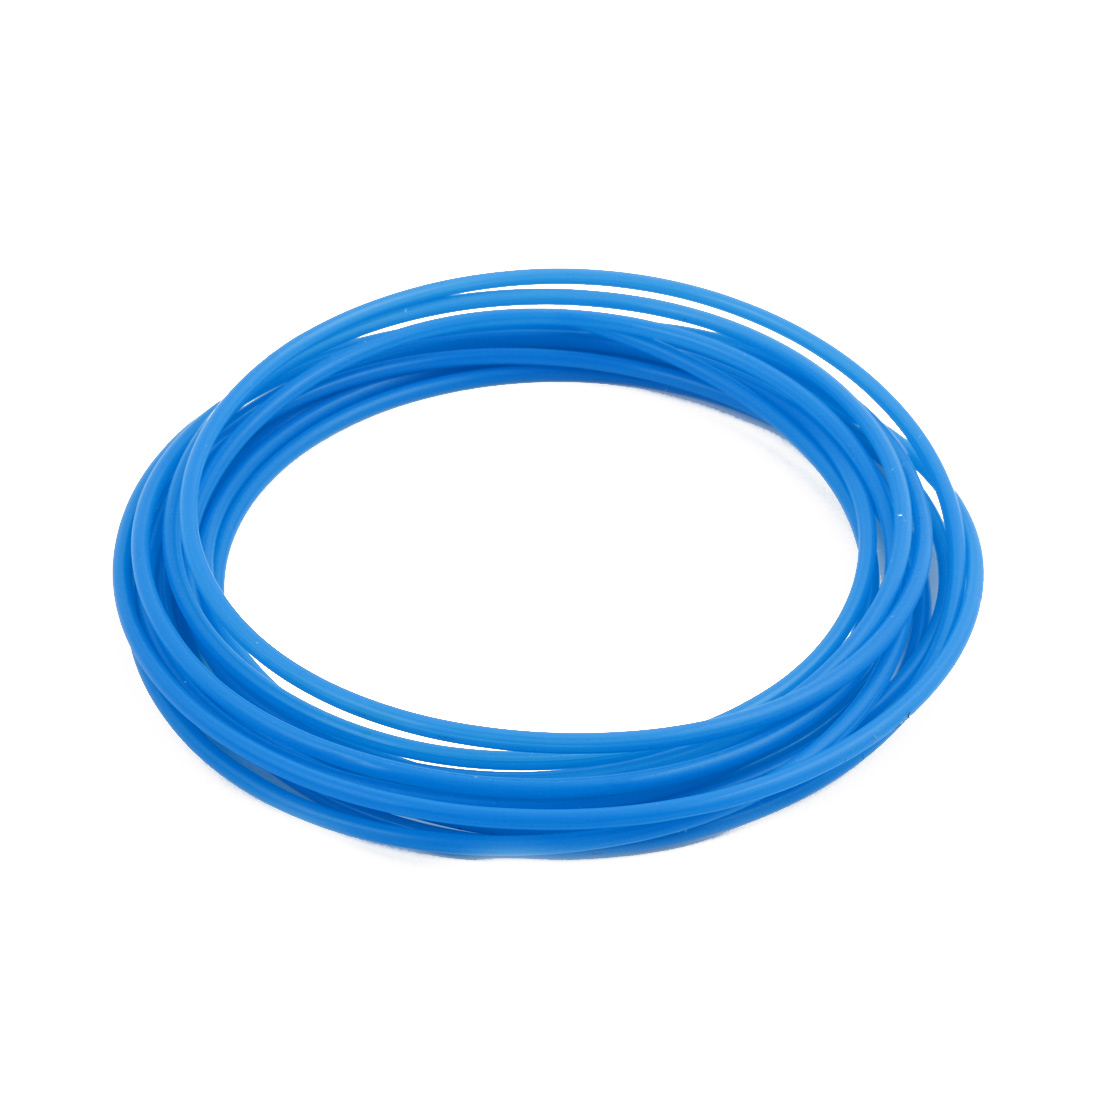 3mmx3.4mm PTFE Resistant High Temperature Blue Tubing 5 Meters 16.4Ft